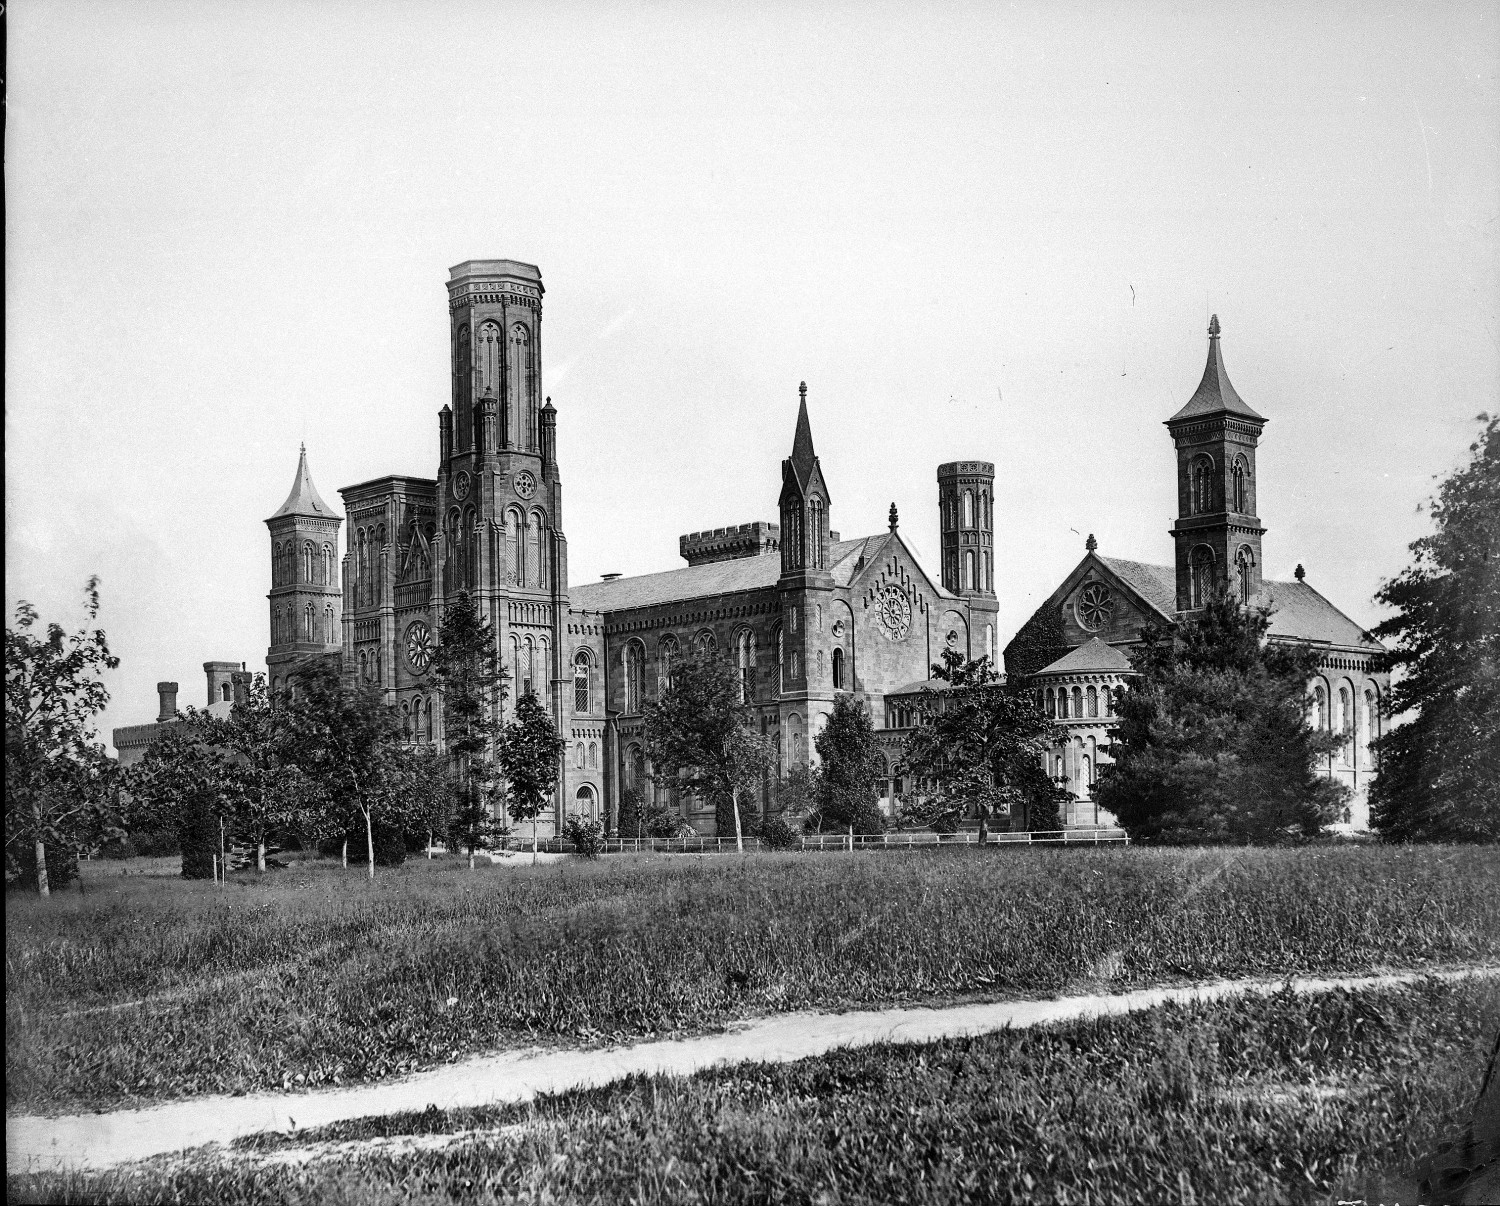 The James Renwick-designed Smithsonian Institution Building on the National Mall. (Photographer unknown, 1867)